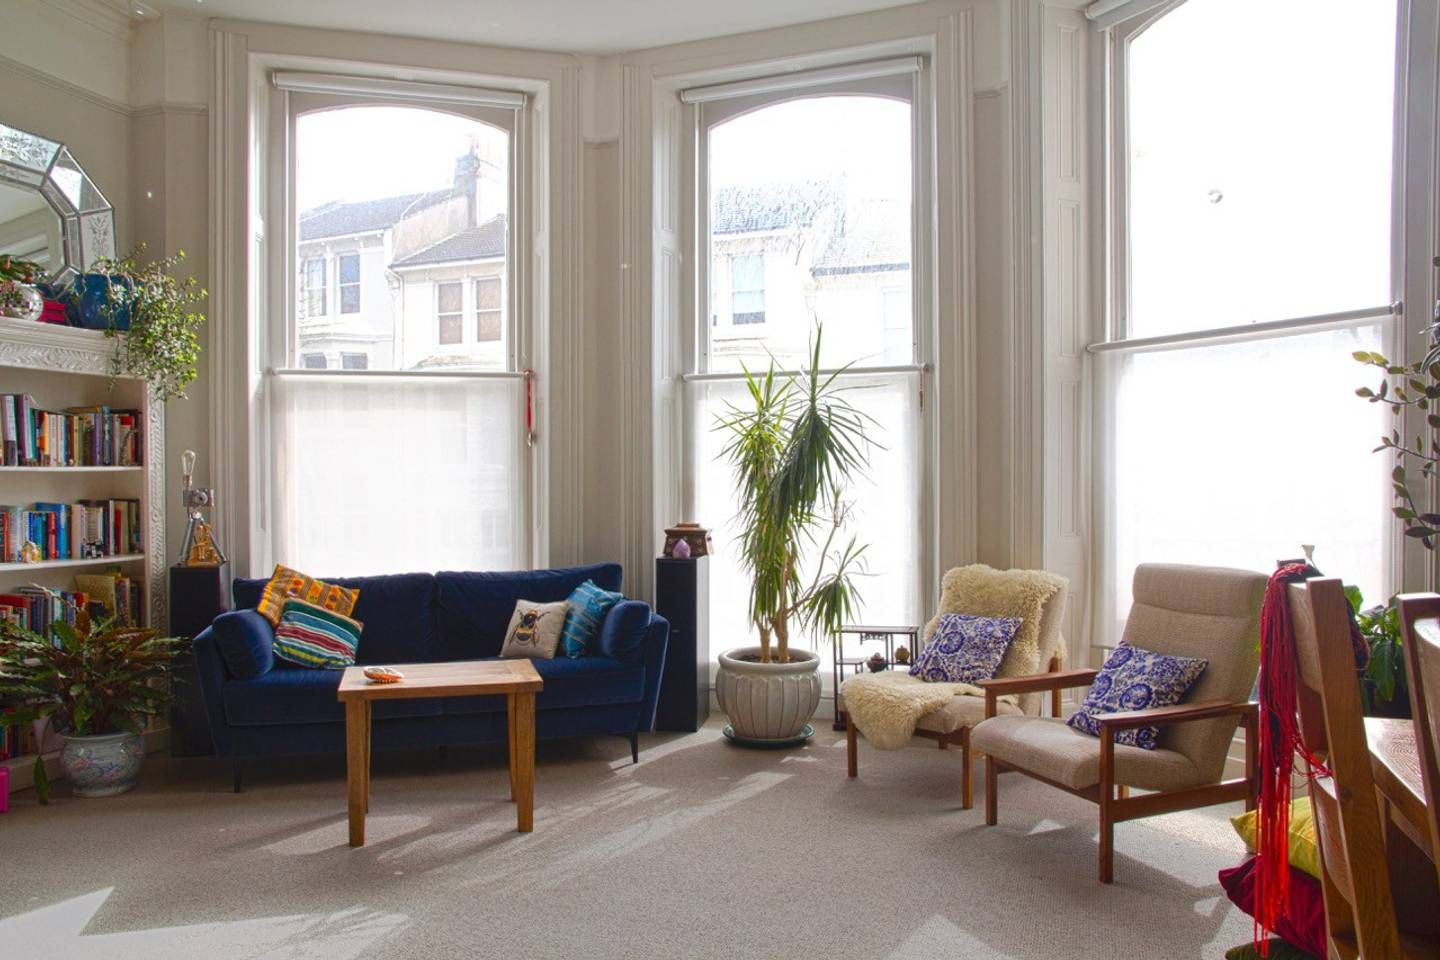 Eclectic Brighton Seaside Escape - Apartments for Rent in ...